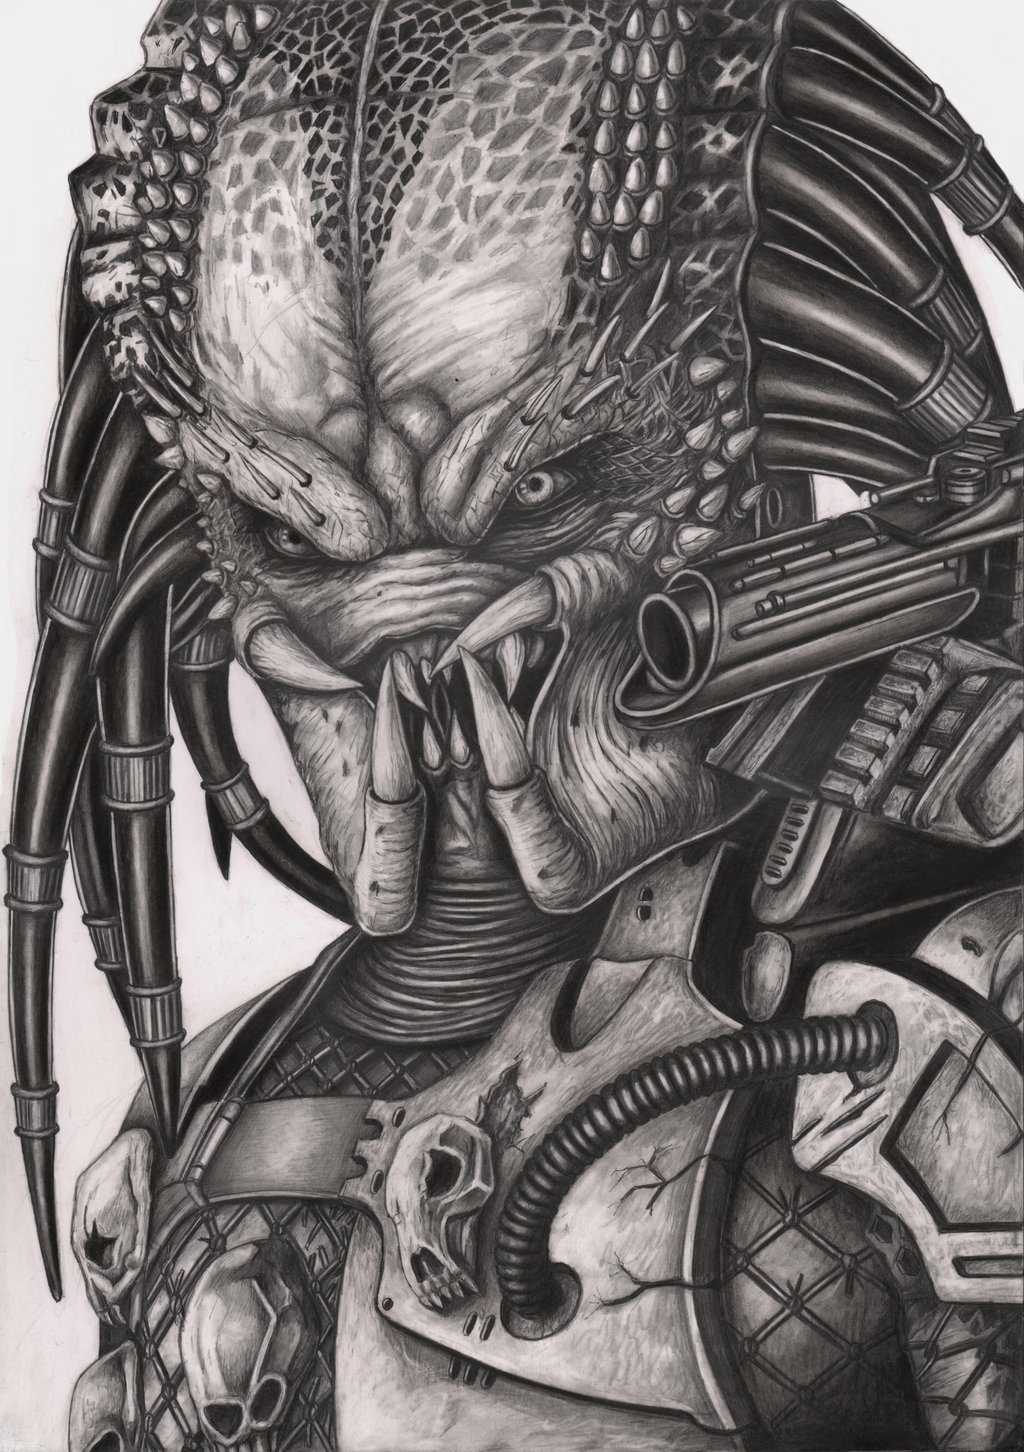 Drawn predator Pen 'Predator' on Artist graphite